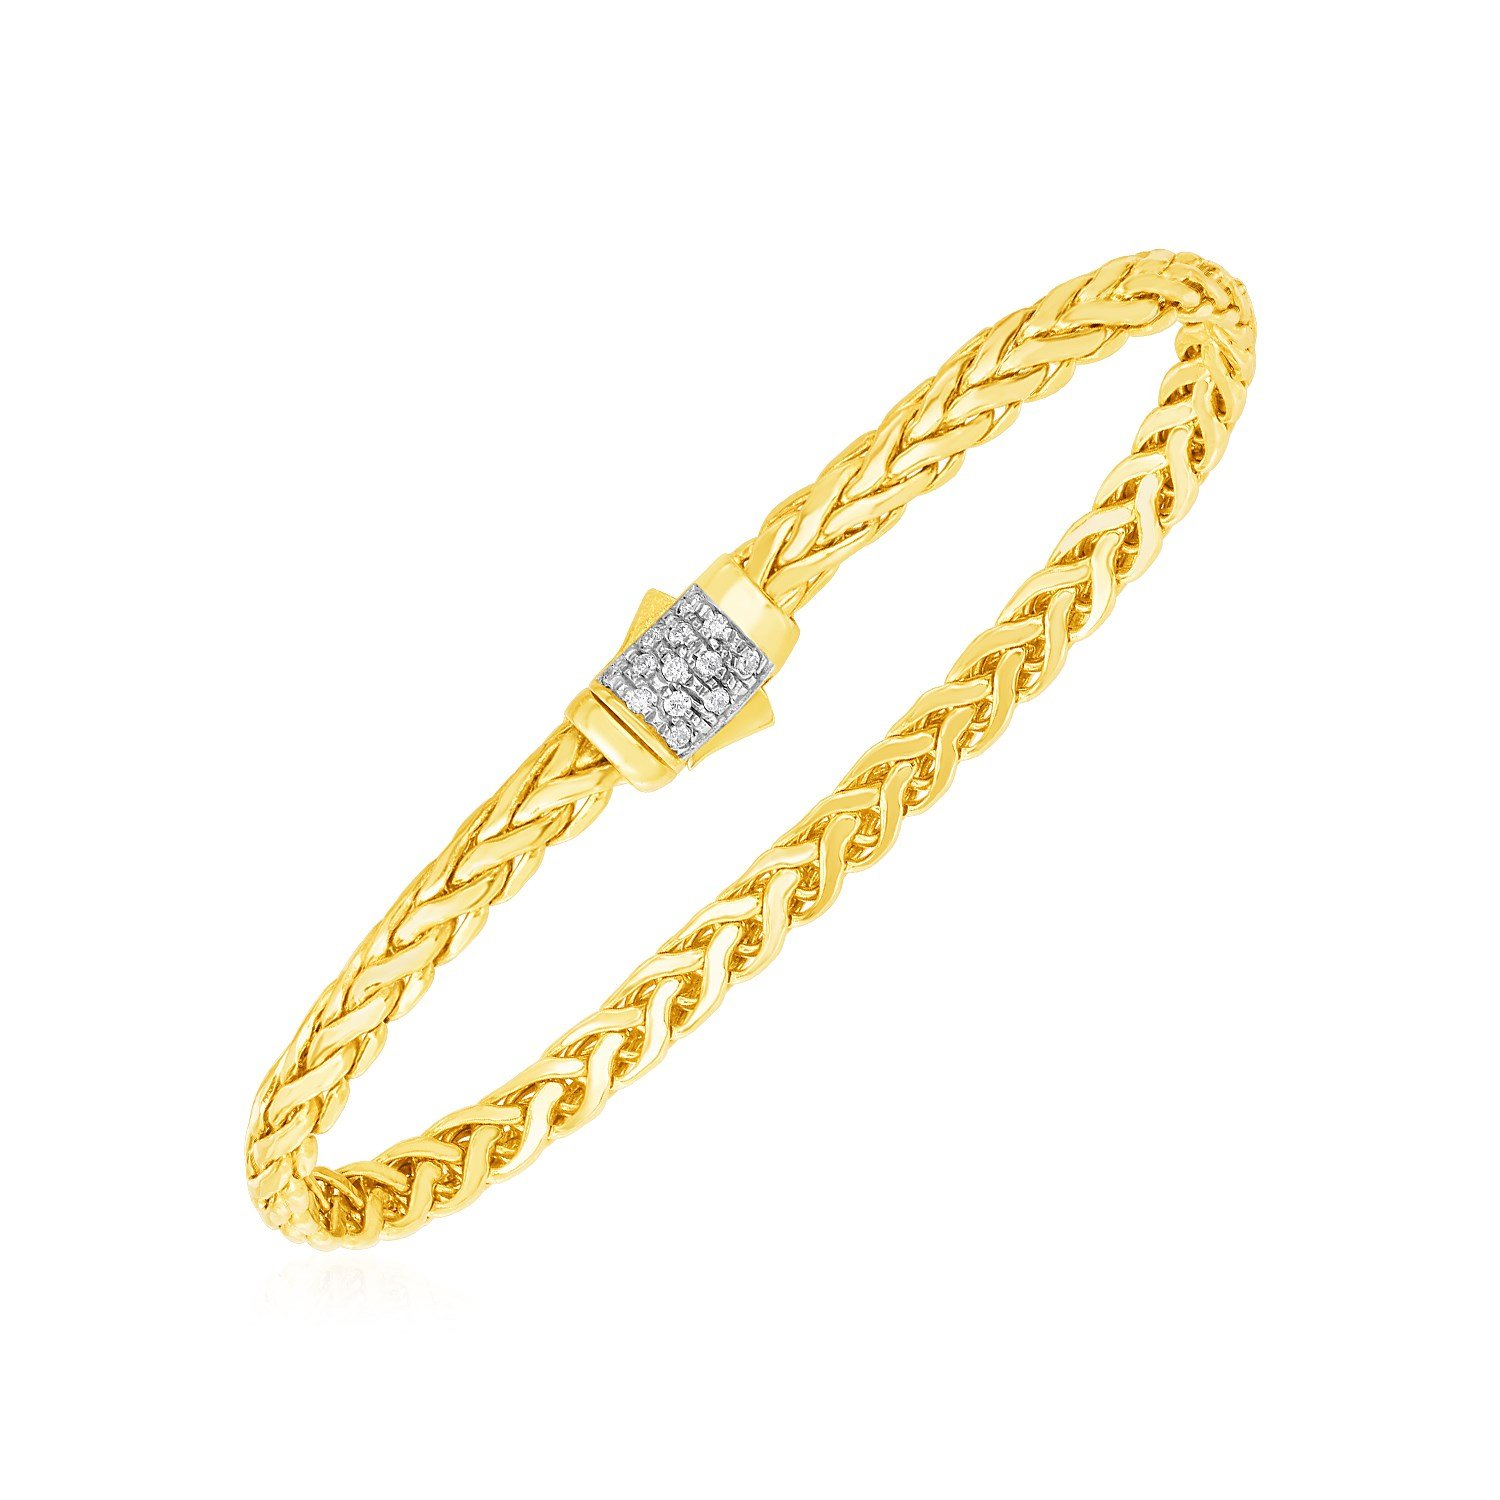 Woven rope bracelet with diamond accented rounded clasp in k